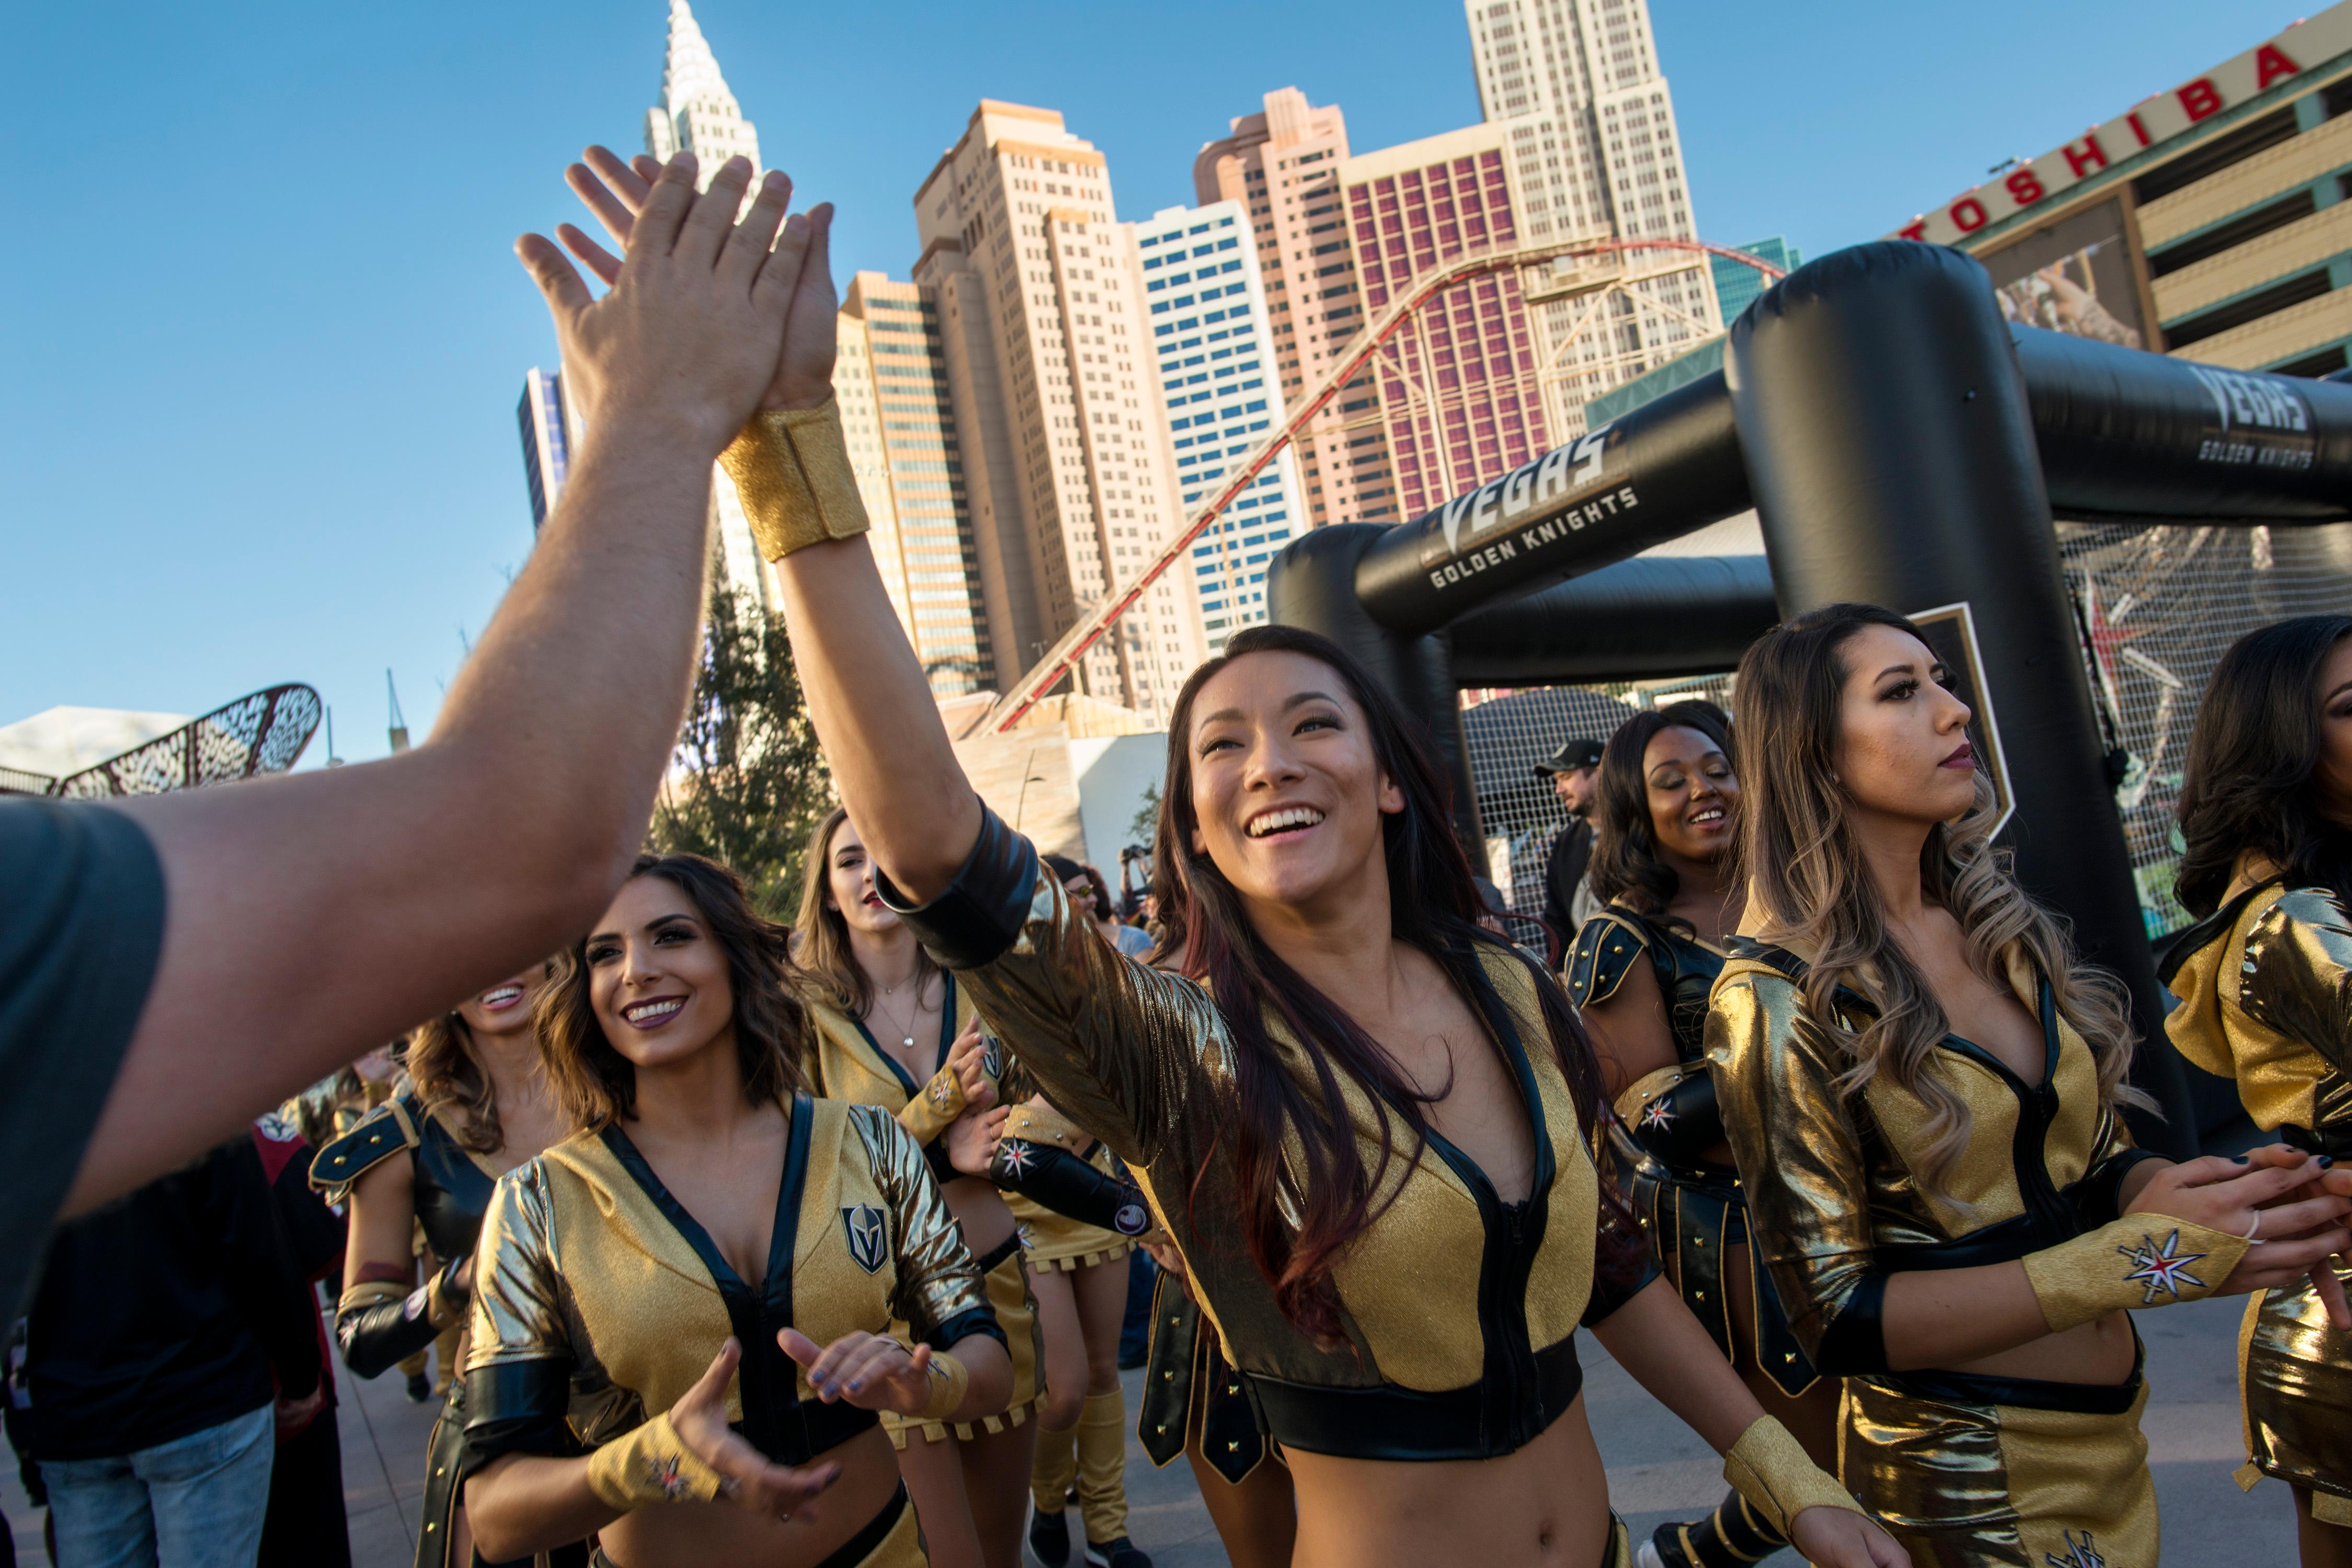 Vegas Golden Knights cheerleaders greet fans before the Vegas Golden Knights home opener Tuesday, Oct. 10, 2017, against the Arizona Coyotes at the T-Mobile Arena. CREDIT: Sam Morris/Las Vegas News Bureau